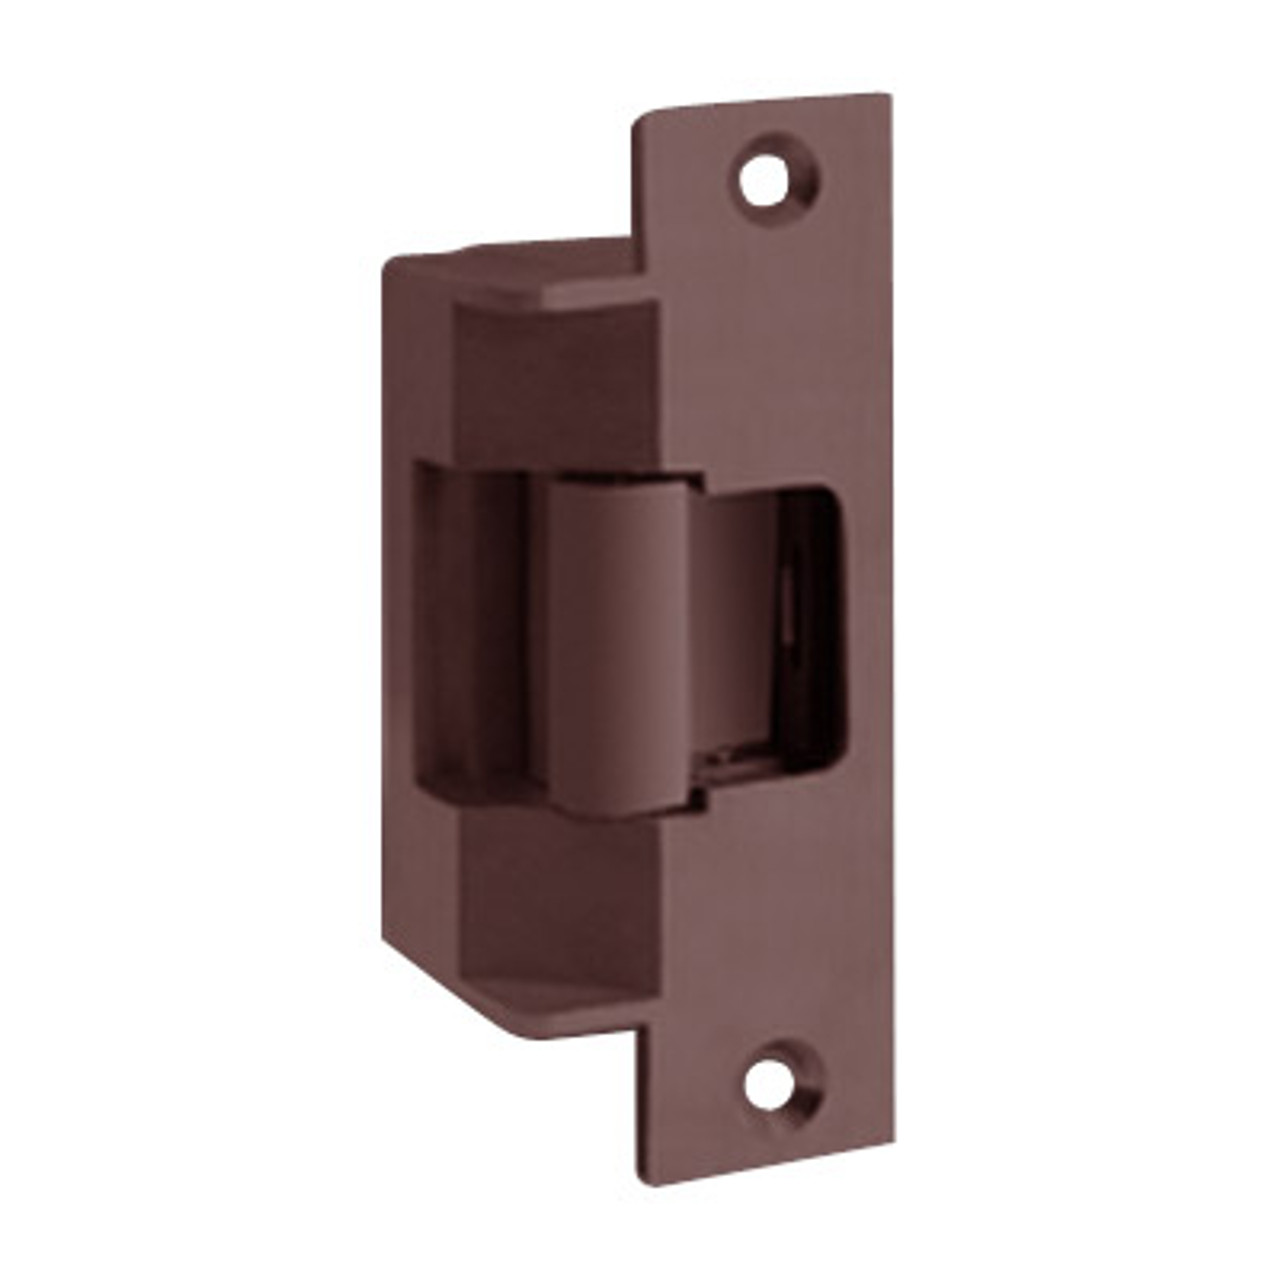 7501-12-613-LBM Hes Electric Strike in Bronze Toned Finish